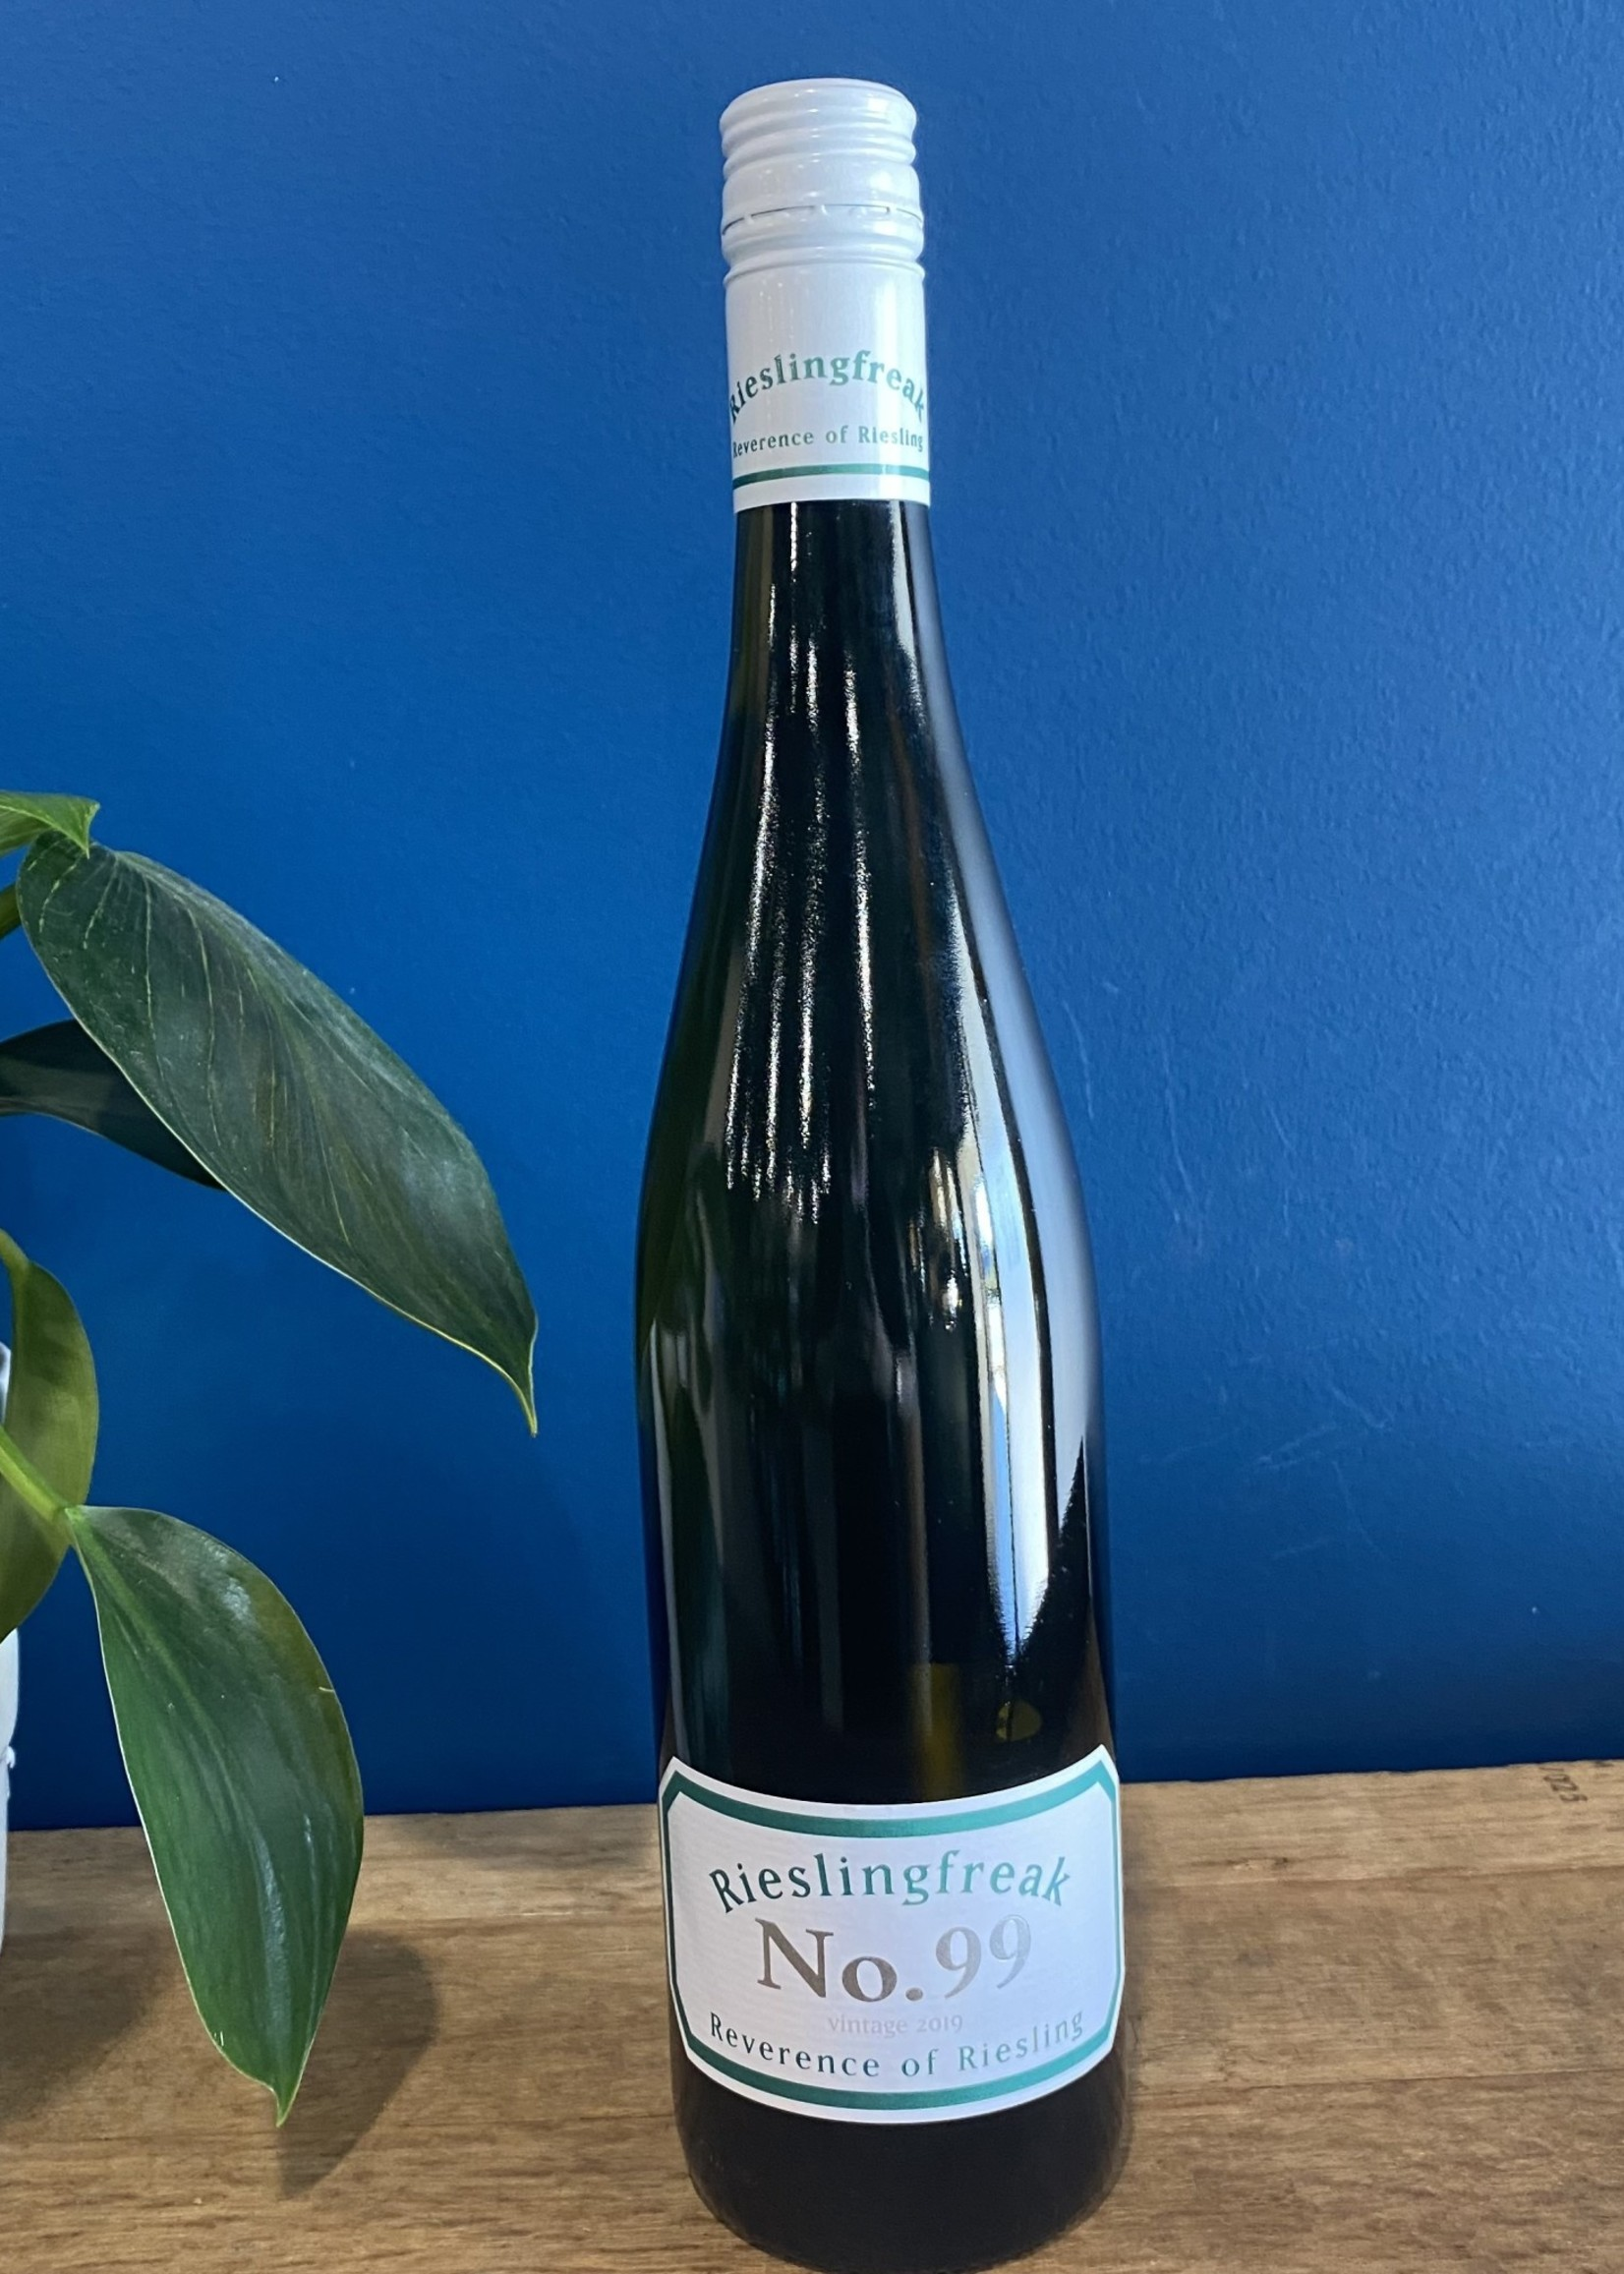 Rieslingfreak Rieslingfreak No.99 Out of the Square